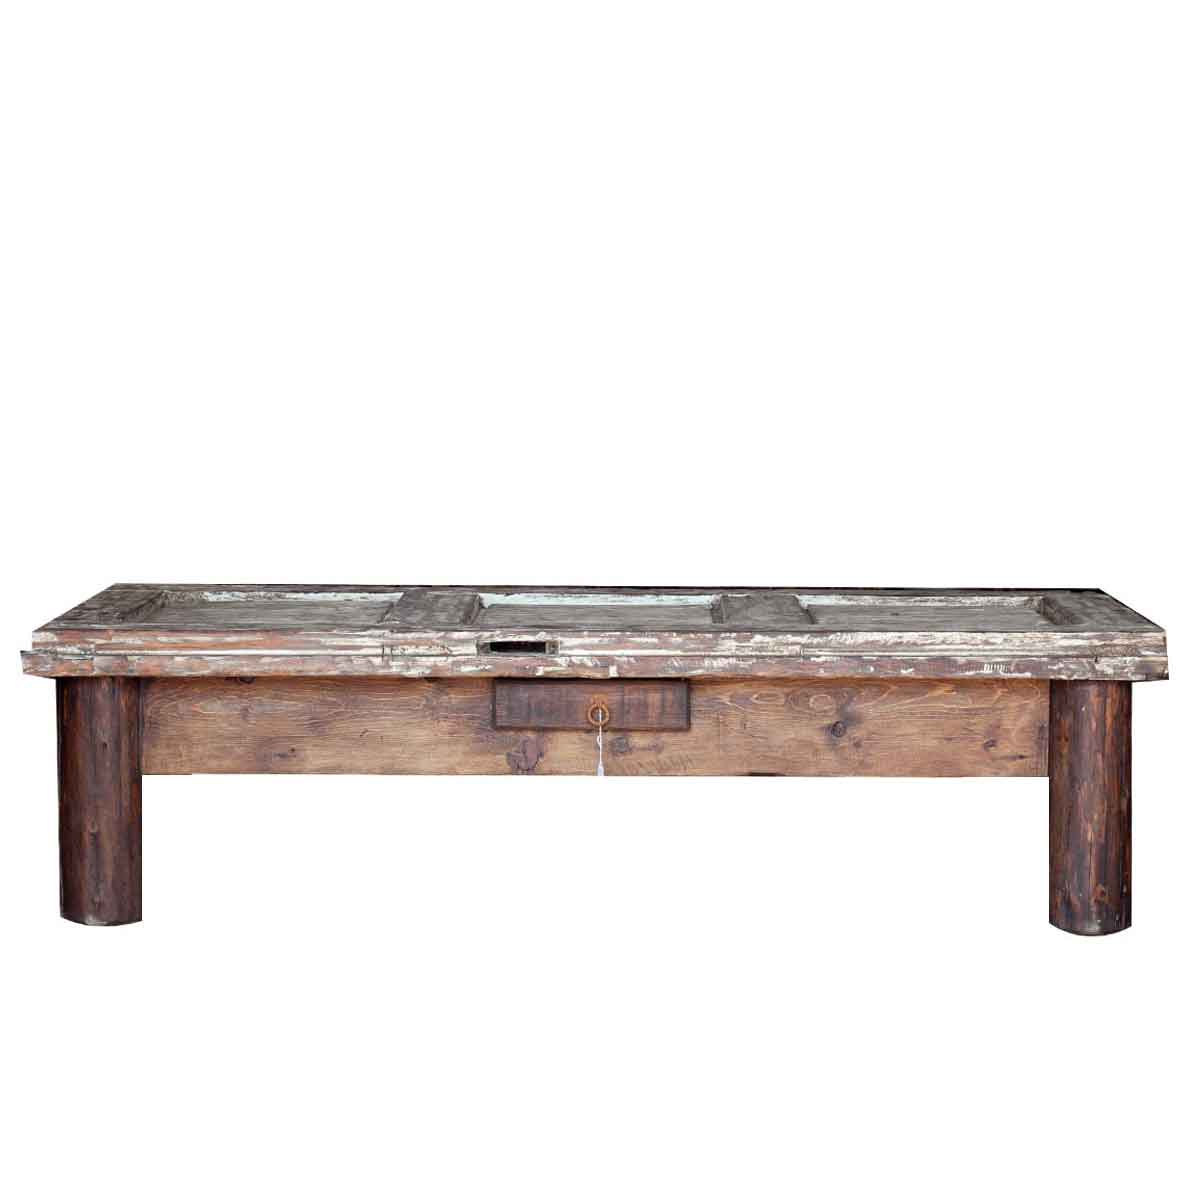 Buy beautiful reclaimed barn wood coffee table online for Reclaimed teak wood coffee table